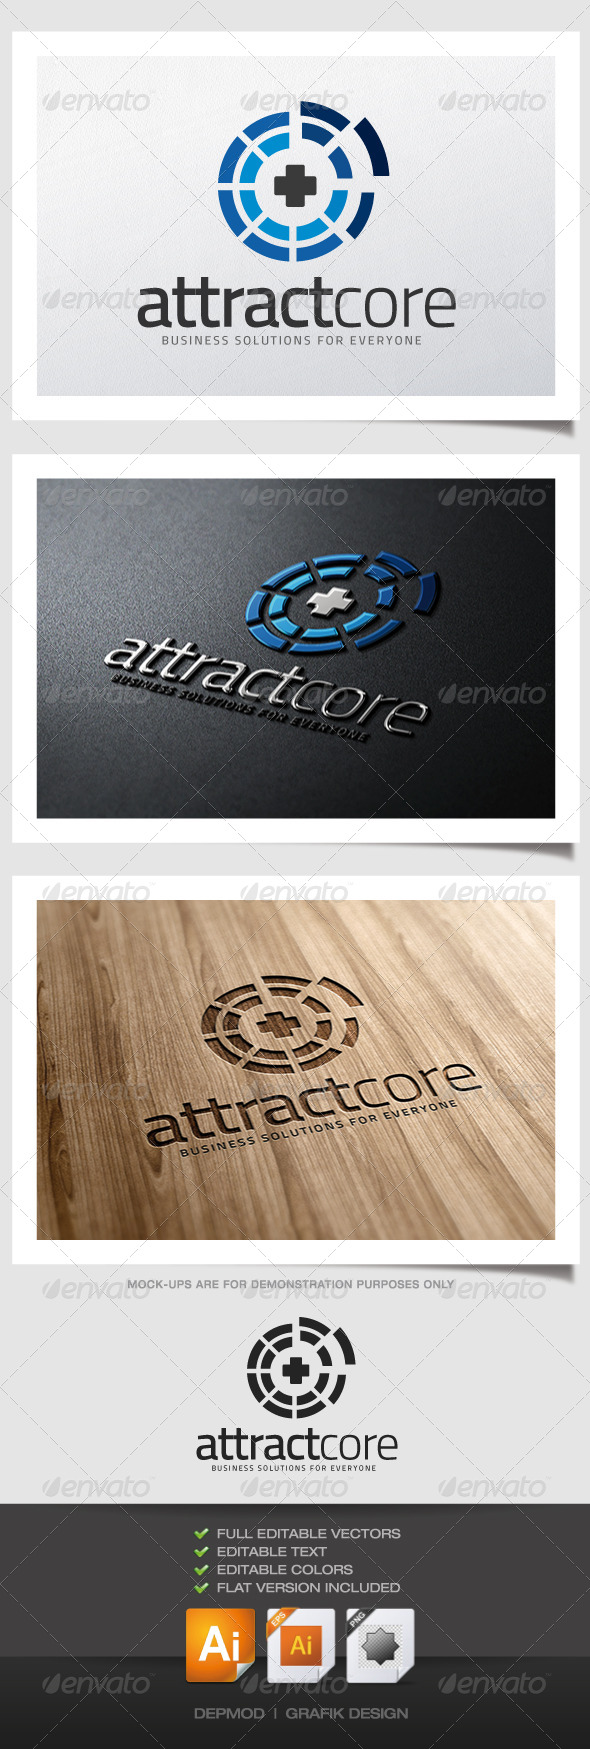 Attract Core Logo - Abstract Logo Templates